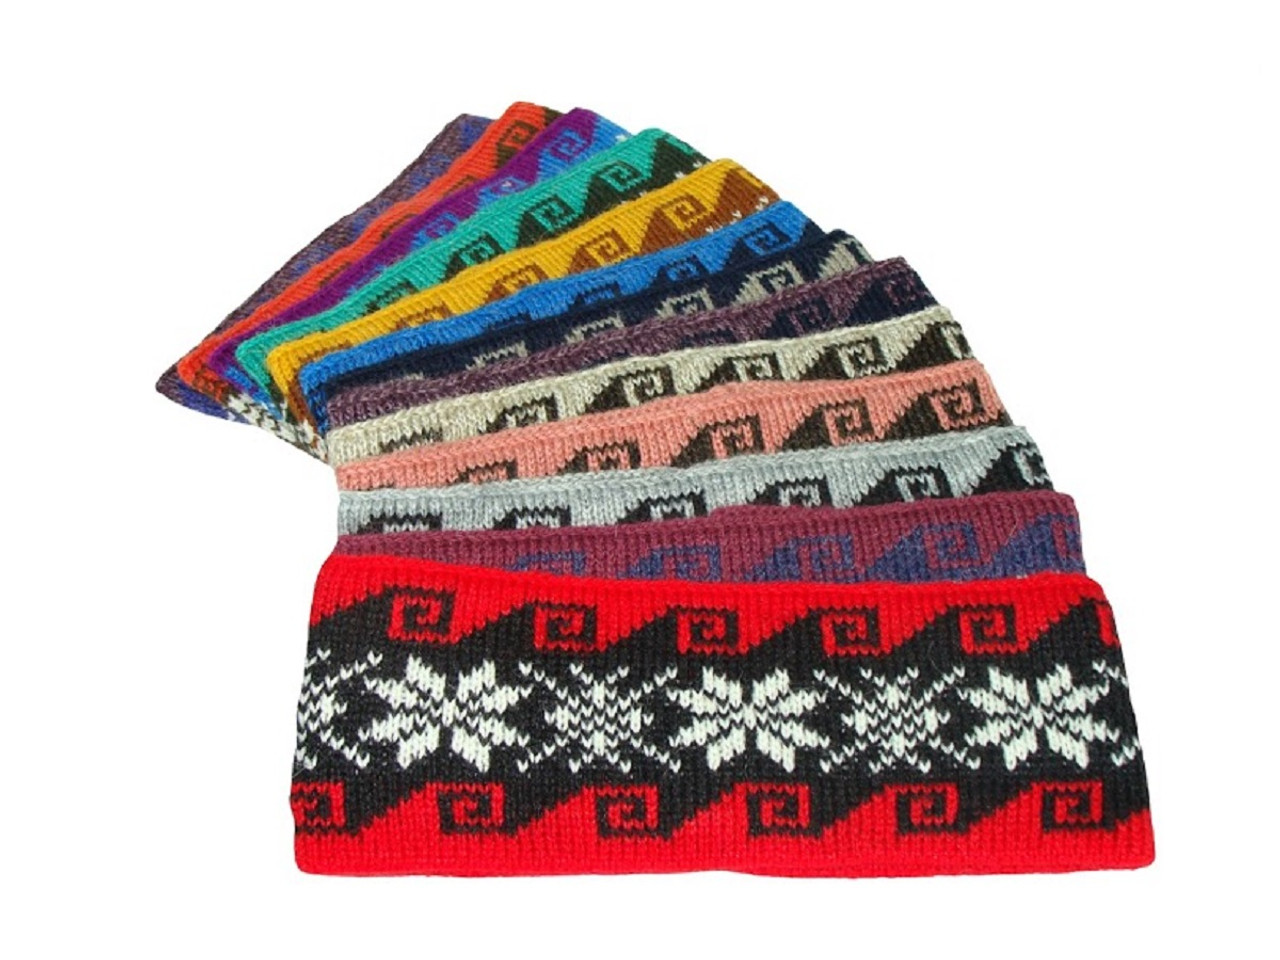 8346dccf9d1 Alpaca Knit Snowflake Assortment Colors Headband 4.5